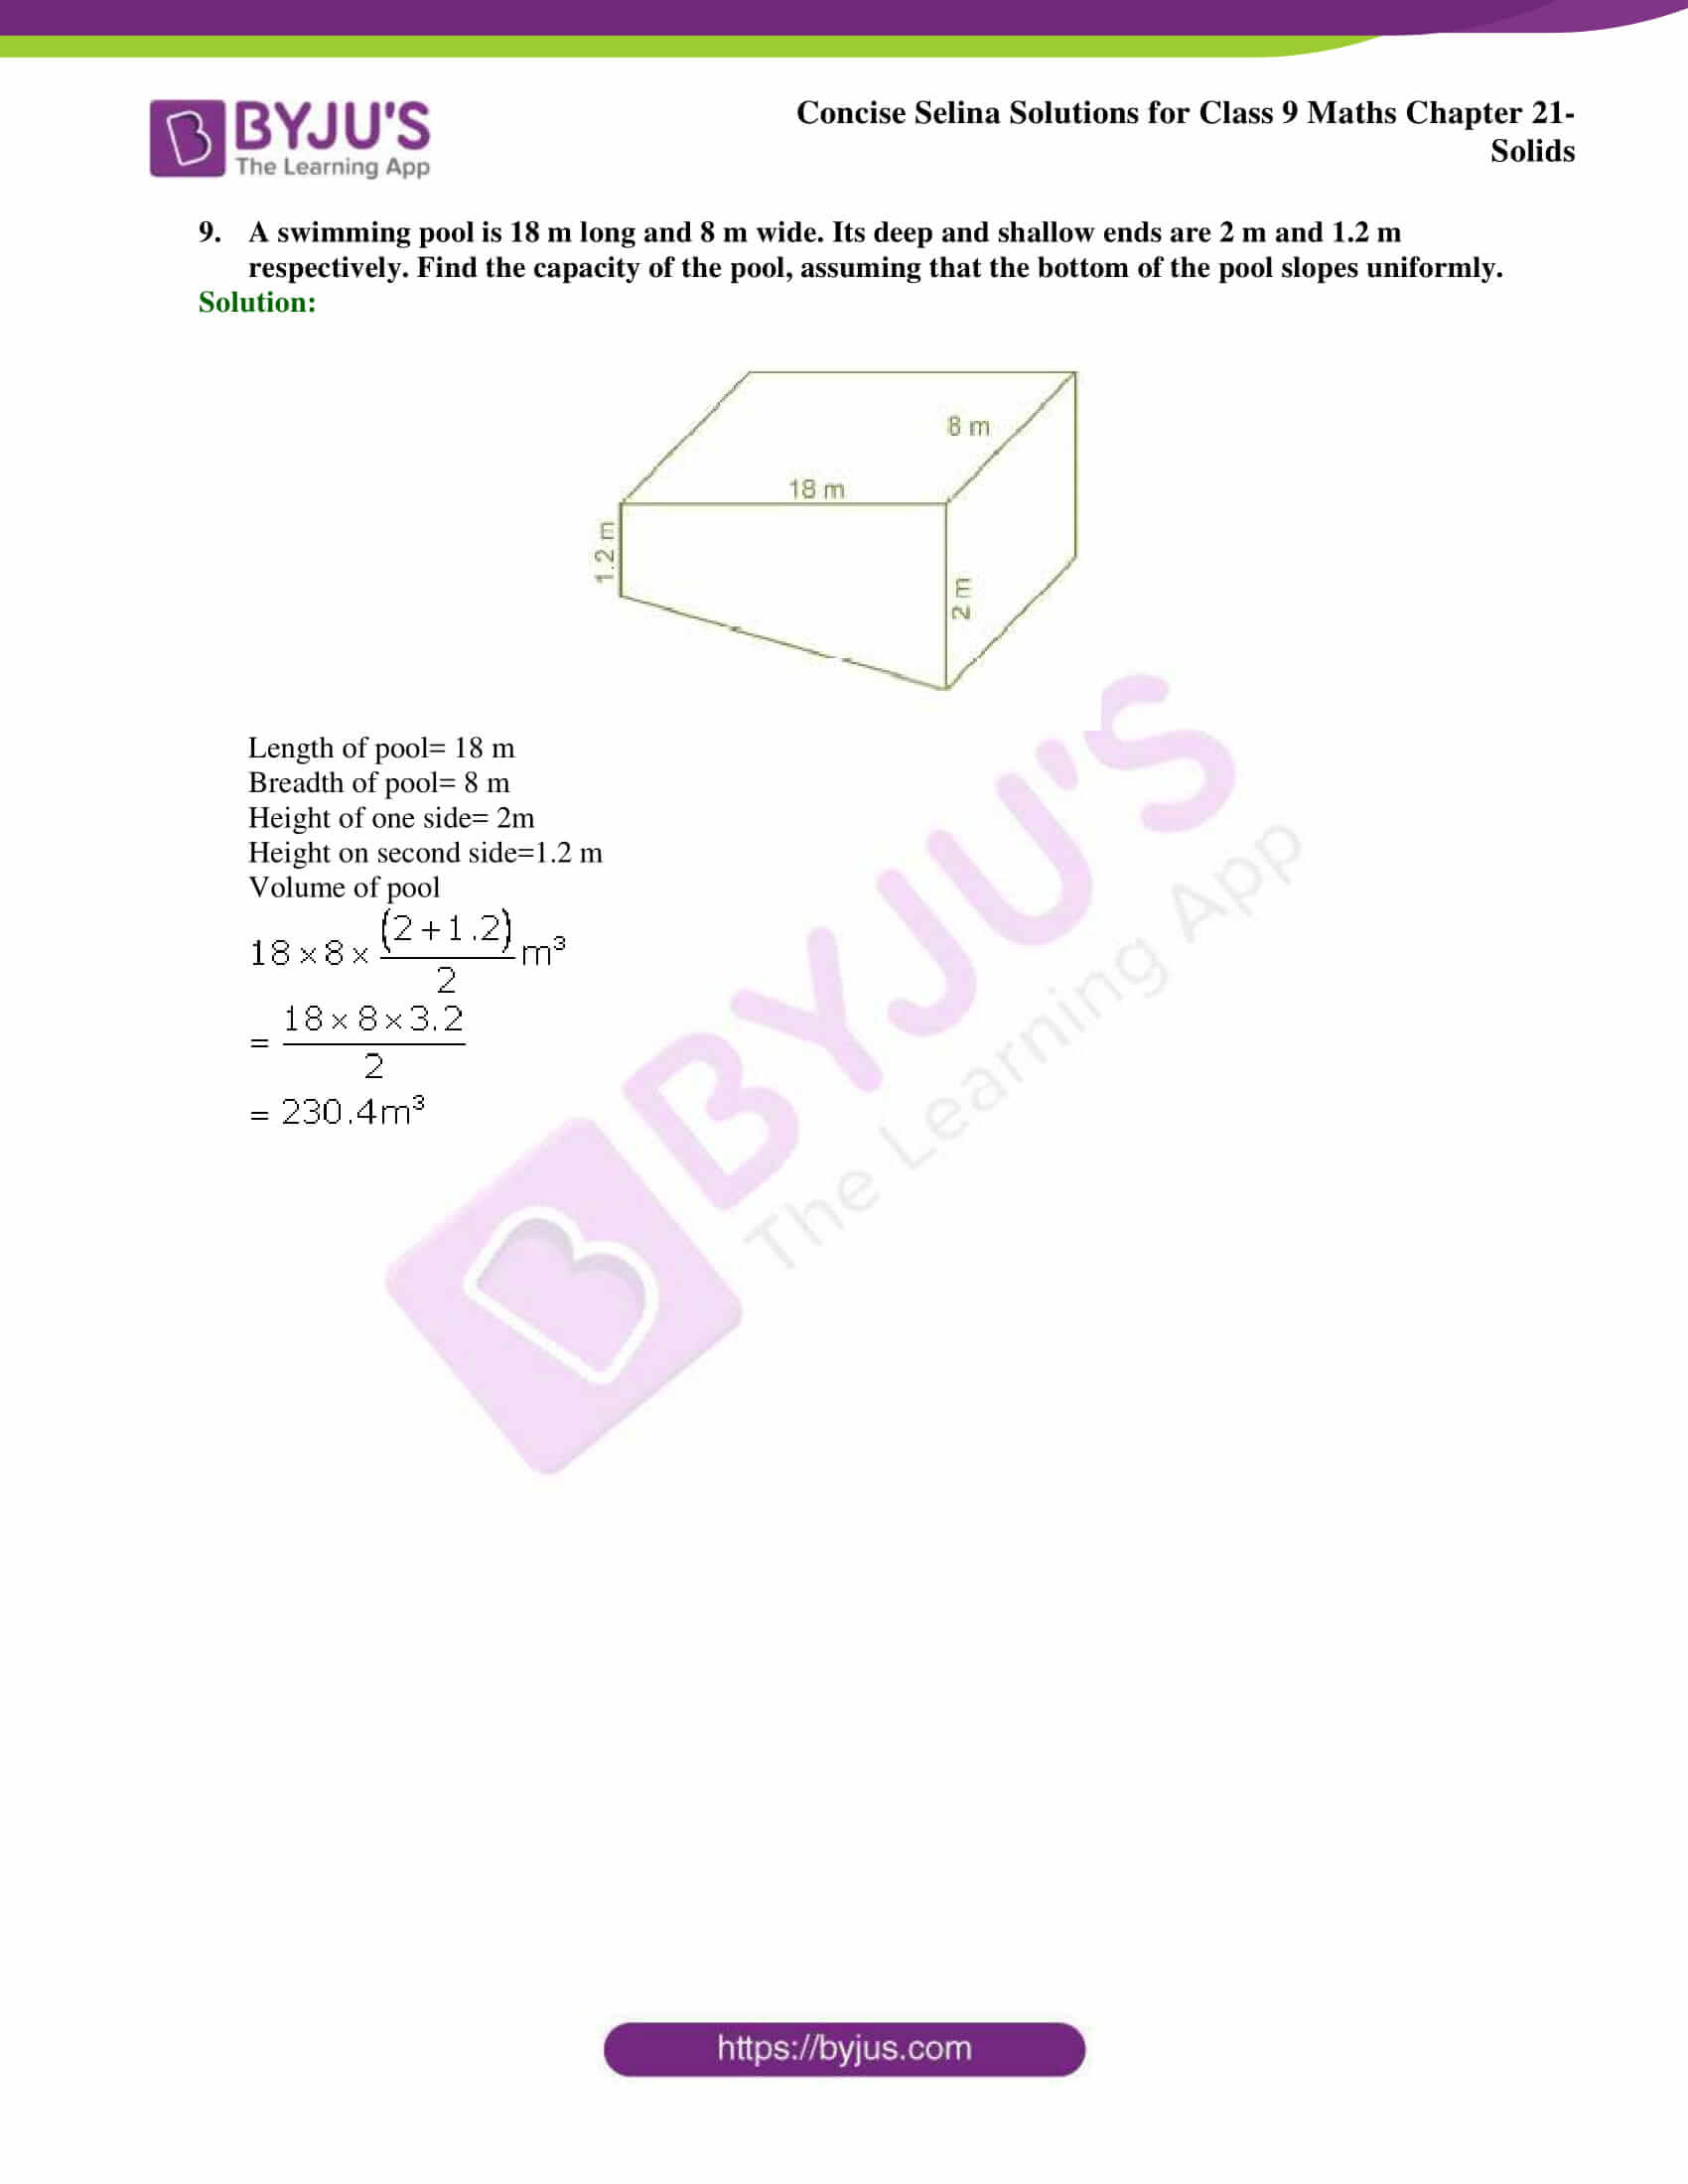 Concise Selina Solutions Class 9 Maths Chapter 21 Solids part 12